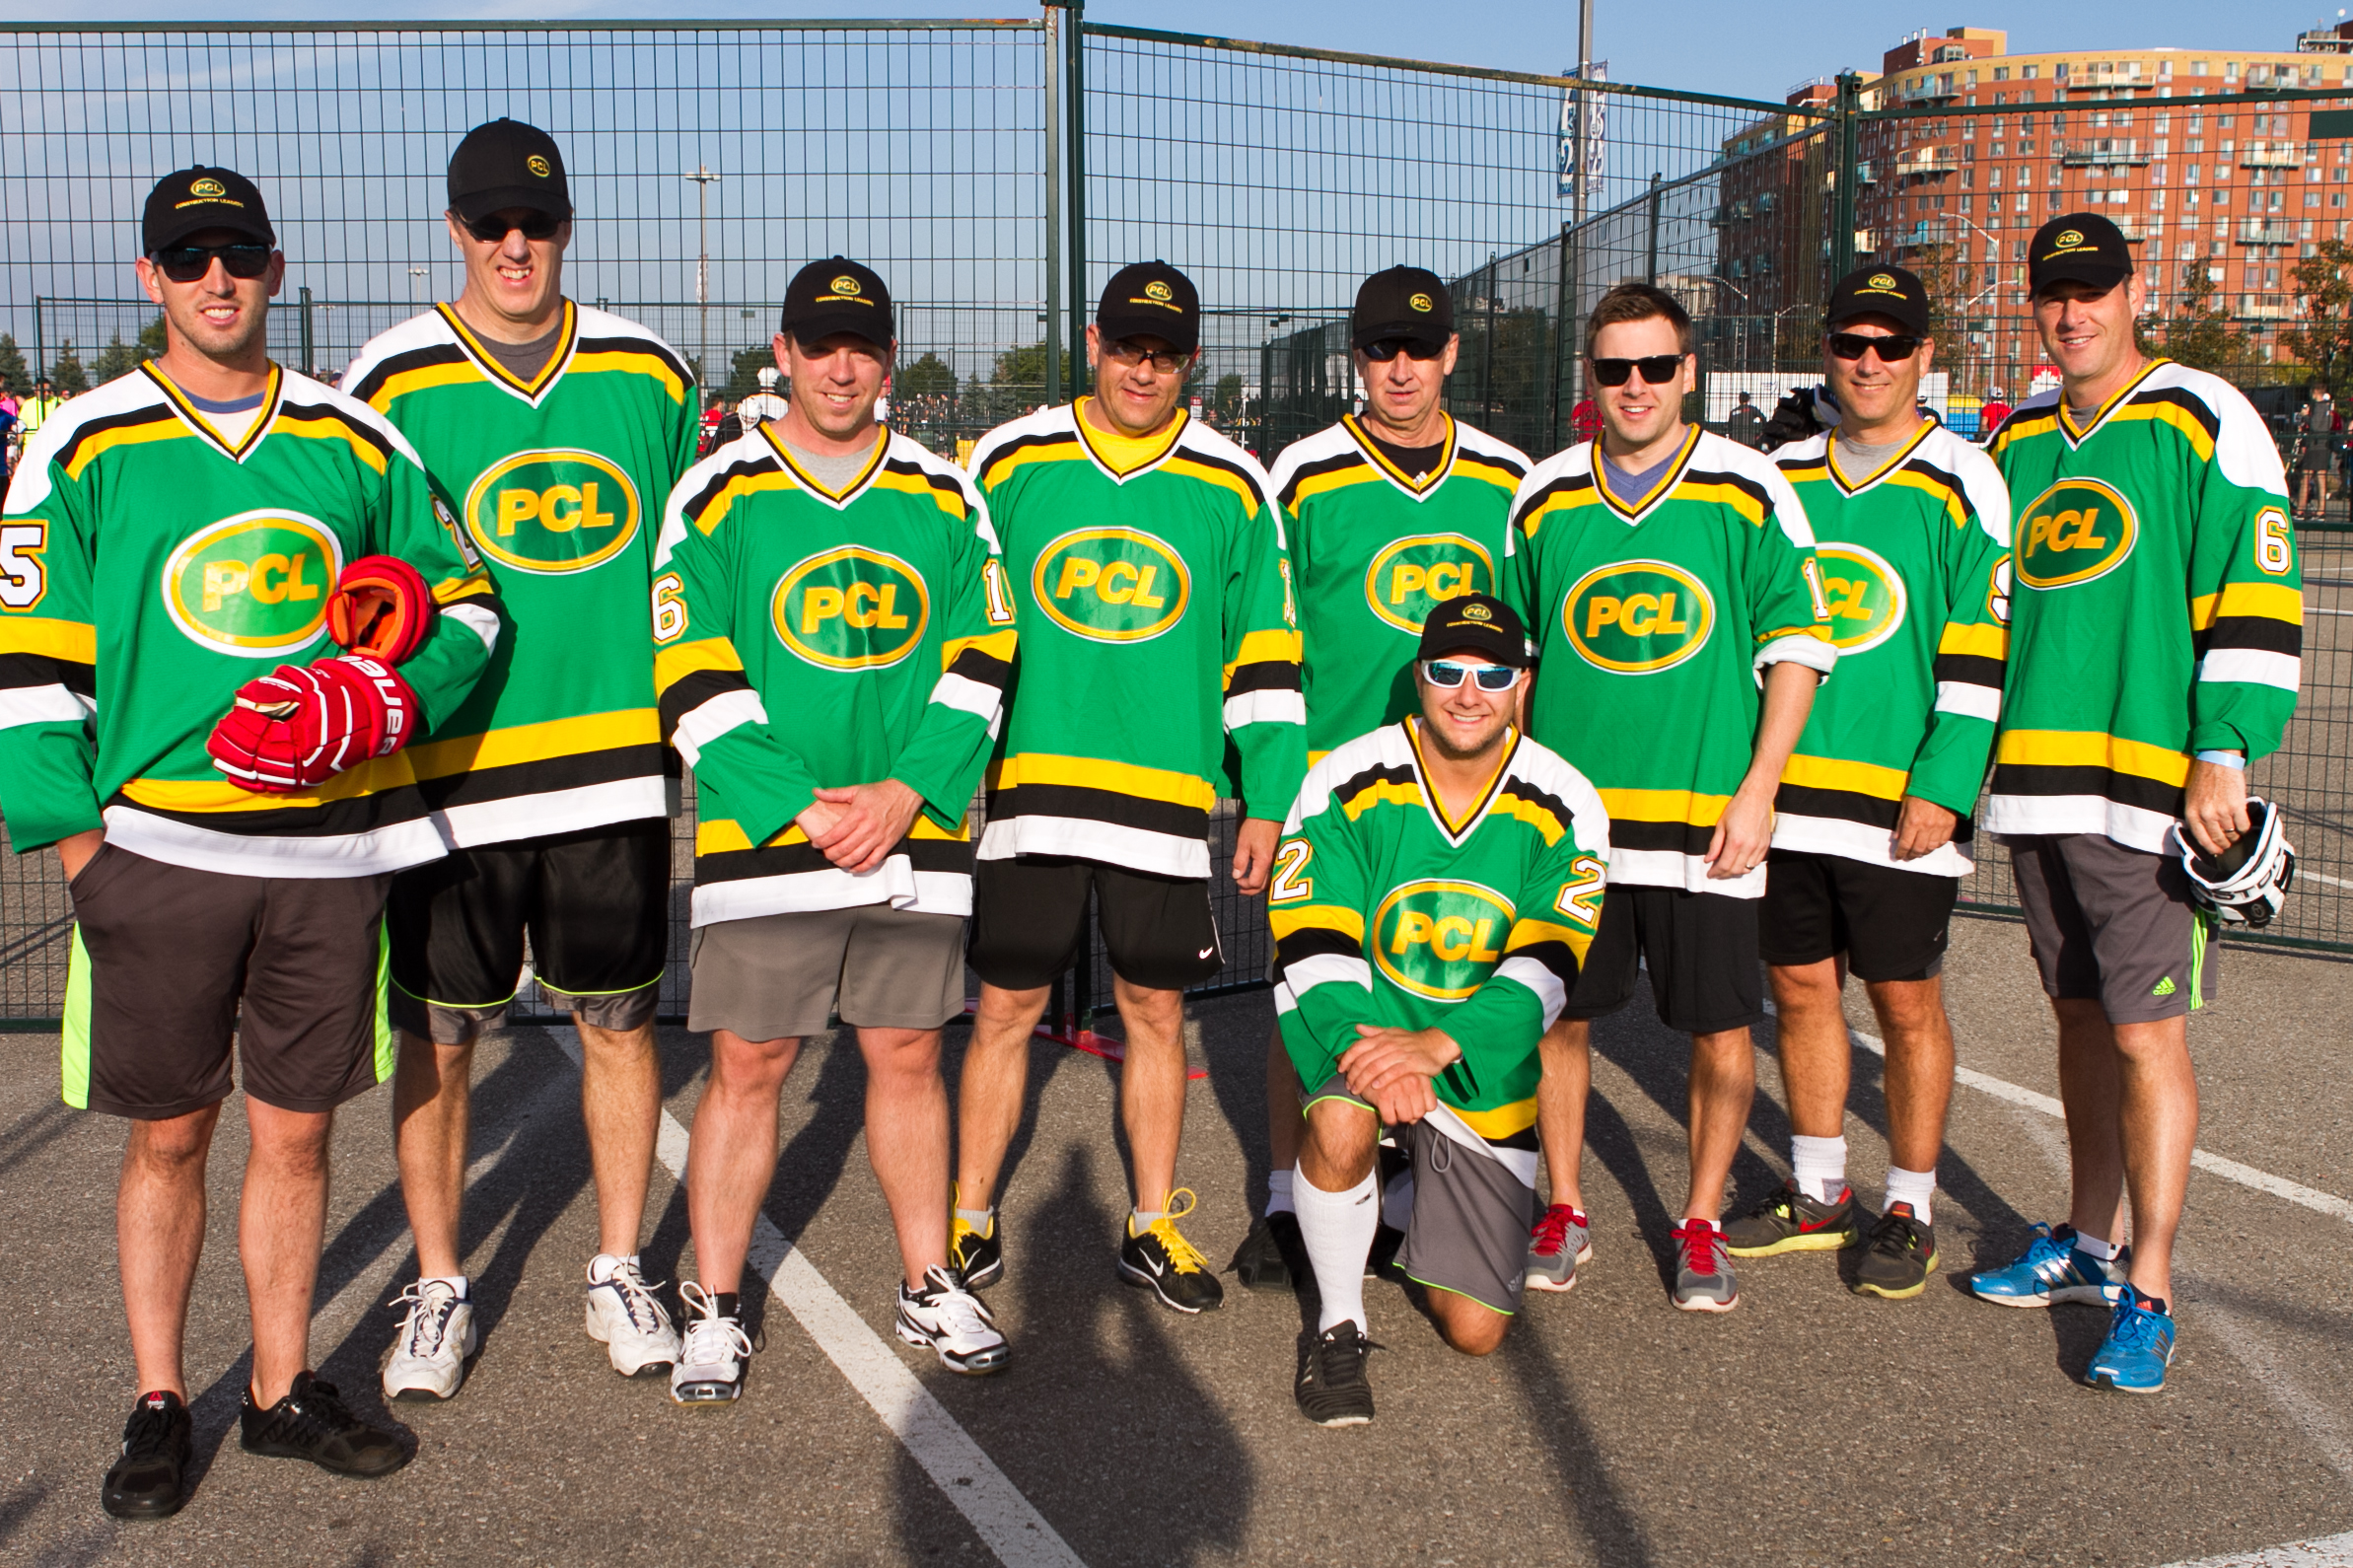 Scotiabank Road Hockey to Conquer Cancer